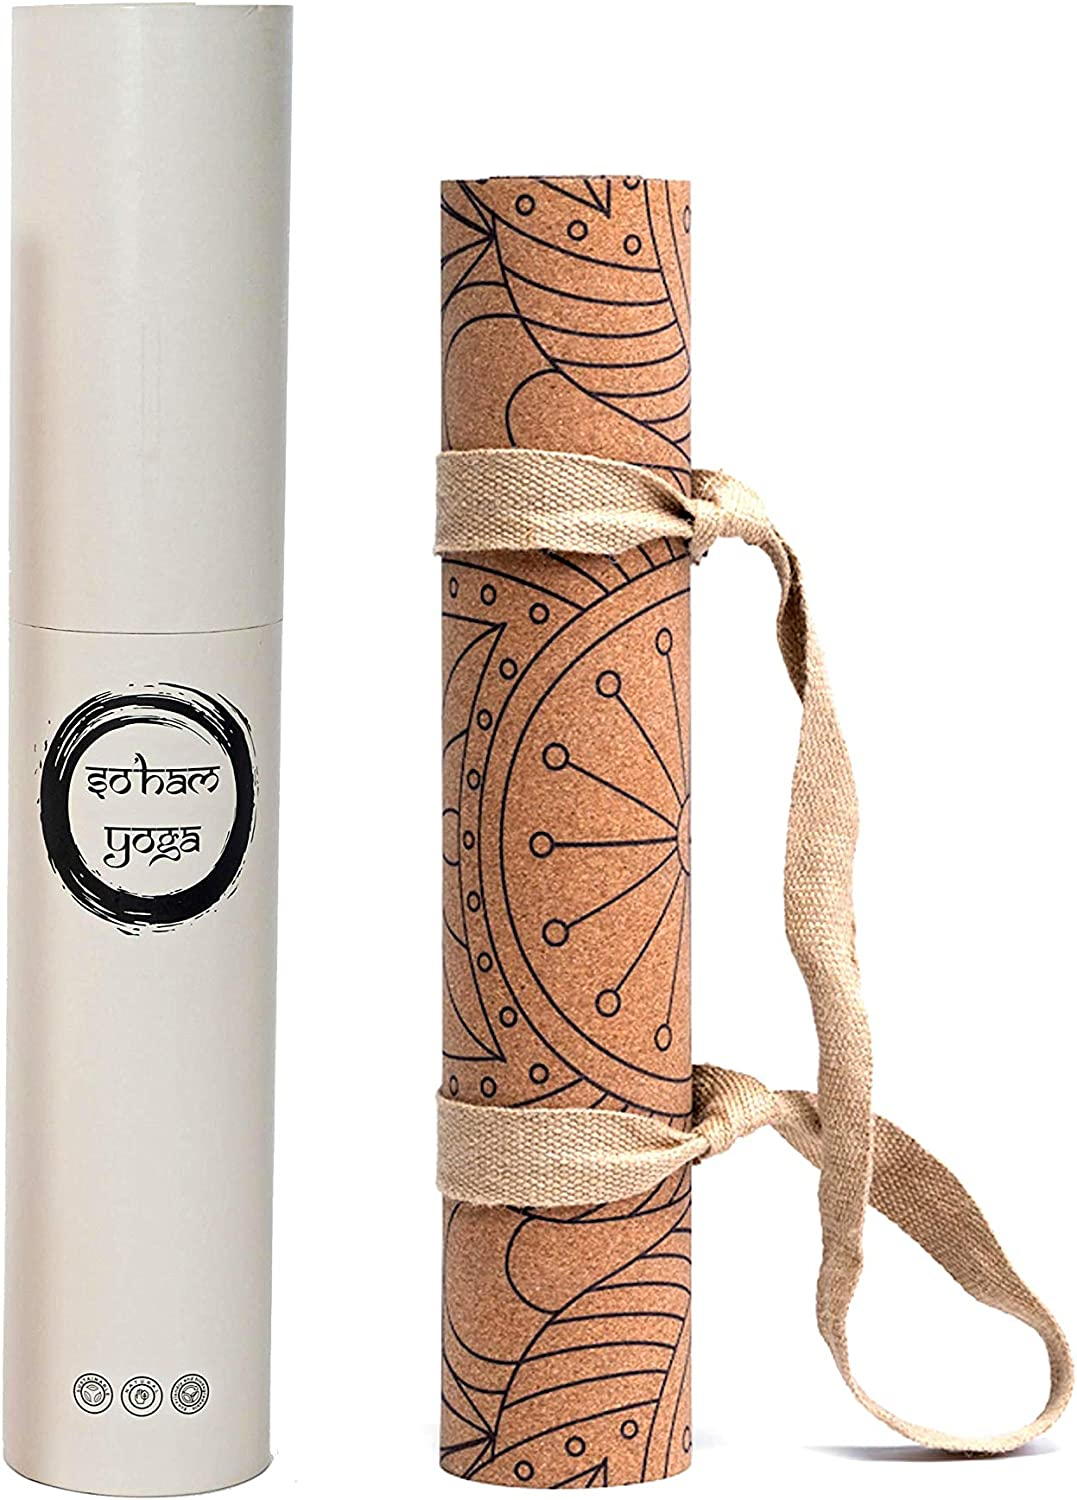 No Odor  Cork Yoga Mat by SoHam Yoga Organic Cork with Natural Rubber Backing  Extra Thick Non-Slip